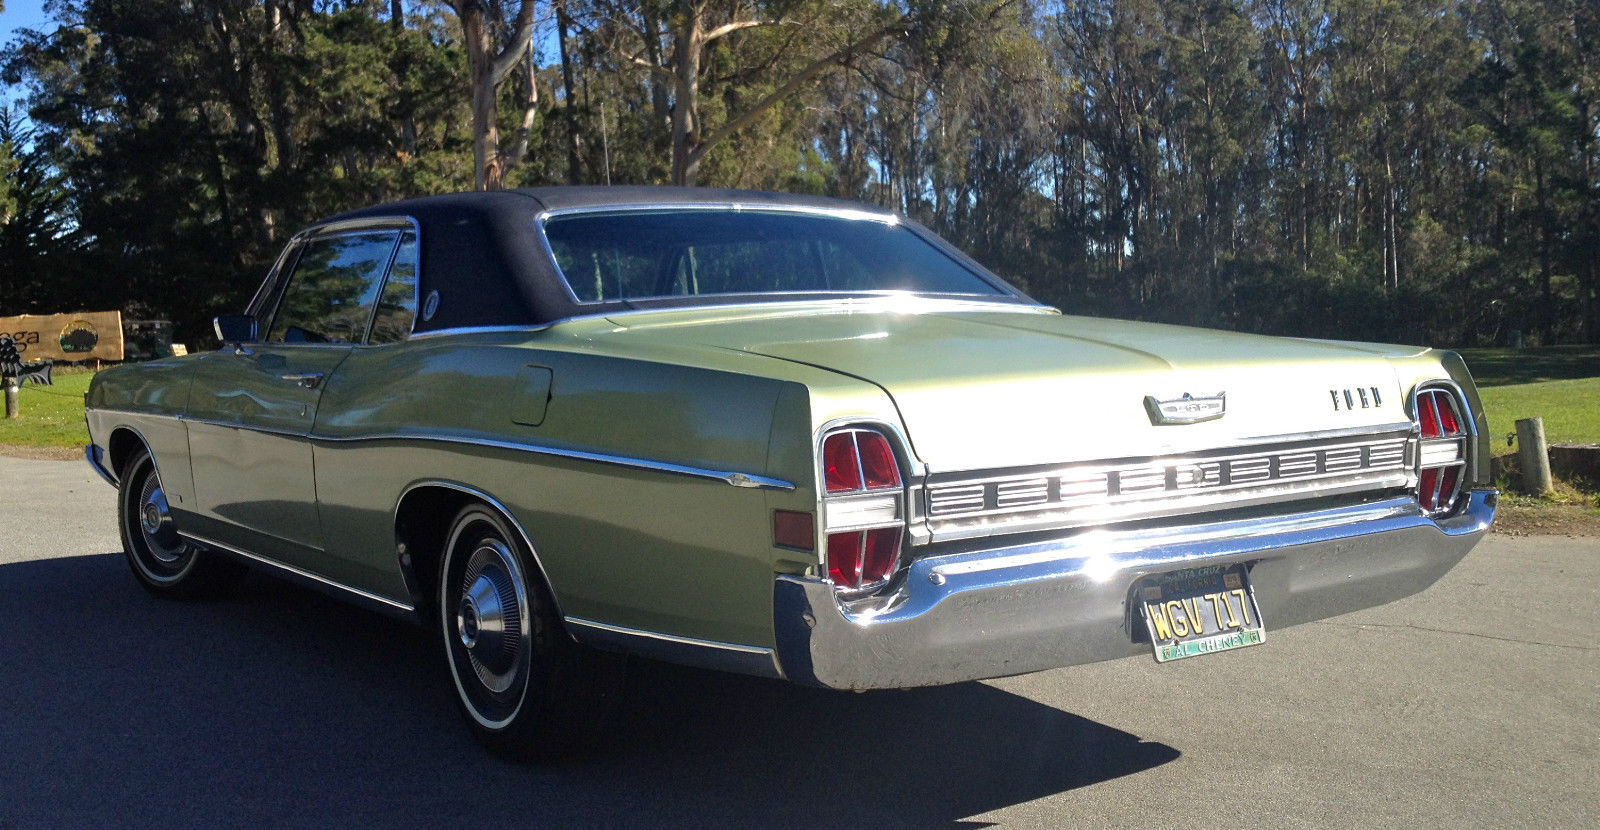 1972 Ford Ltd For Sale >> 1968 ford Ltd - Classic Ford Other 19680000 for sale